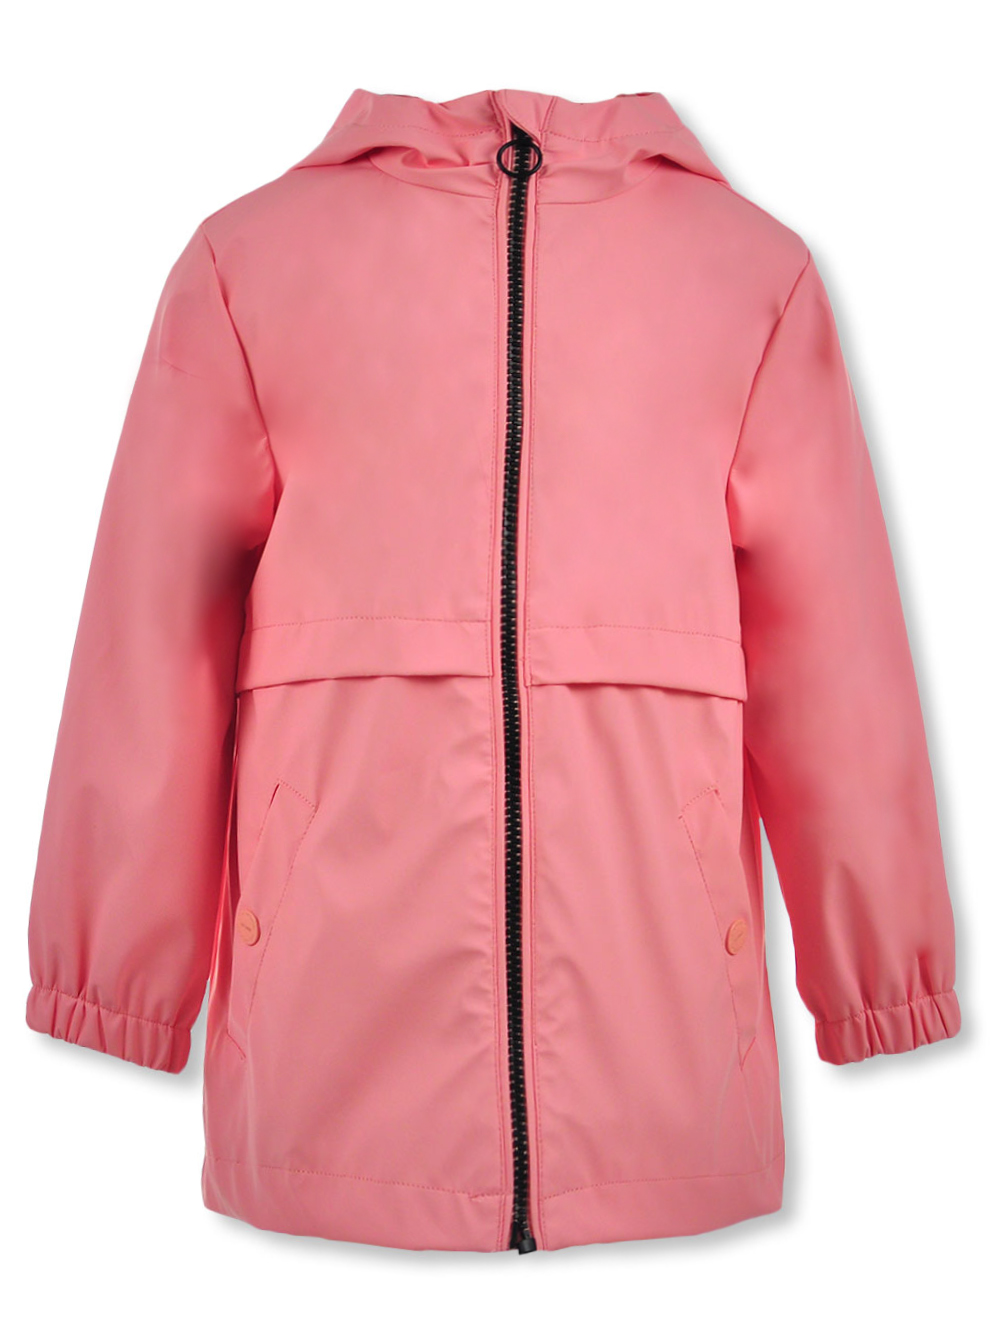 Jackets Hooded Rain Jacket